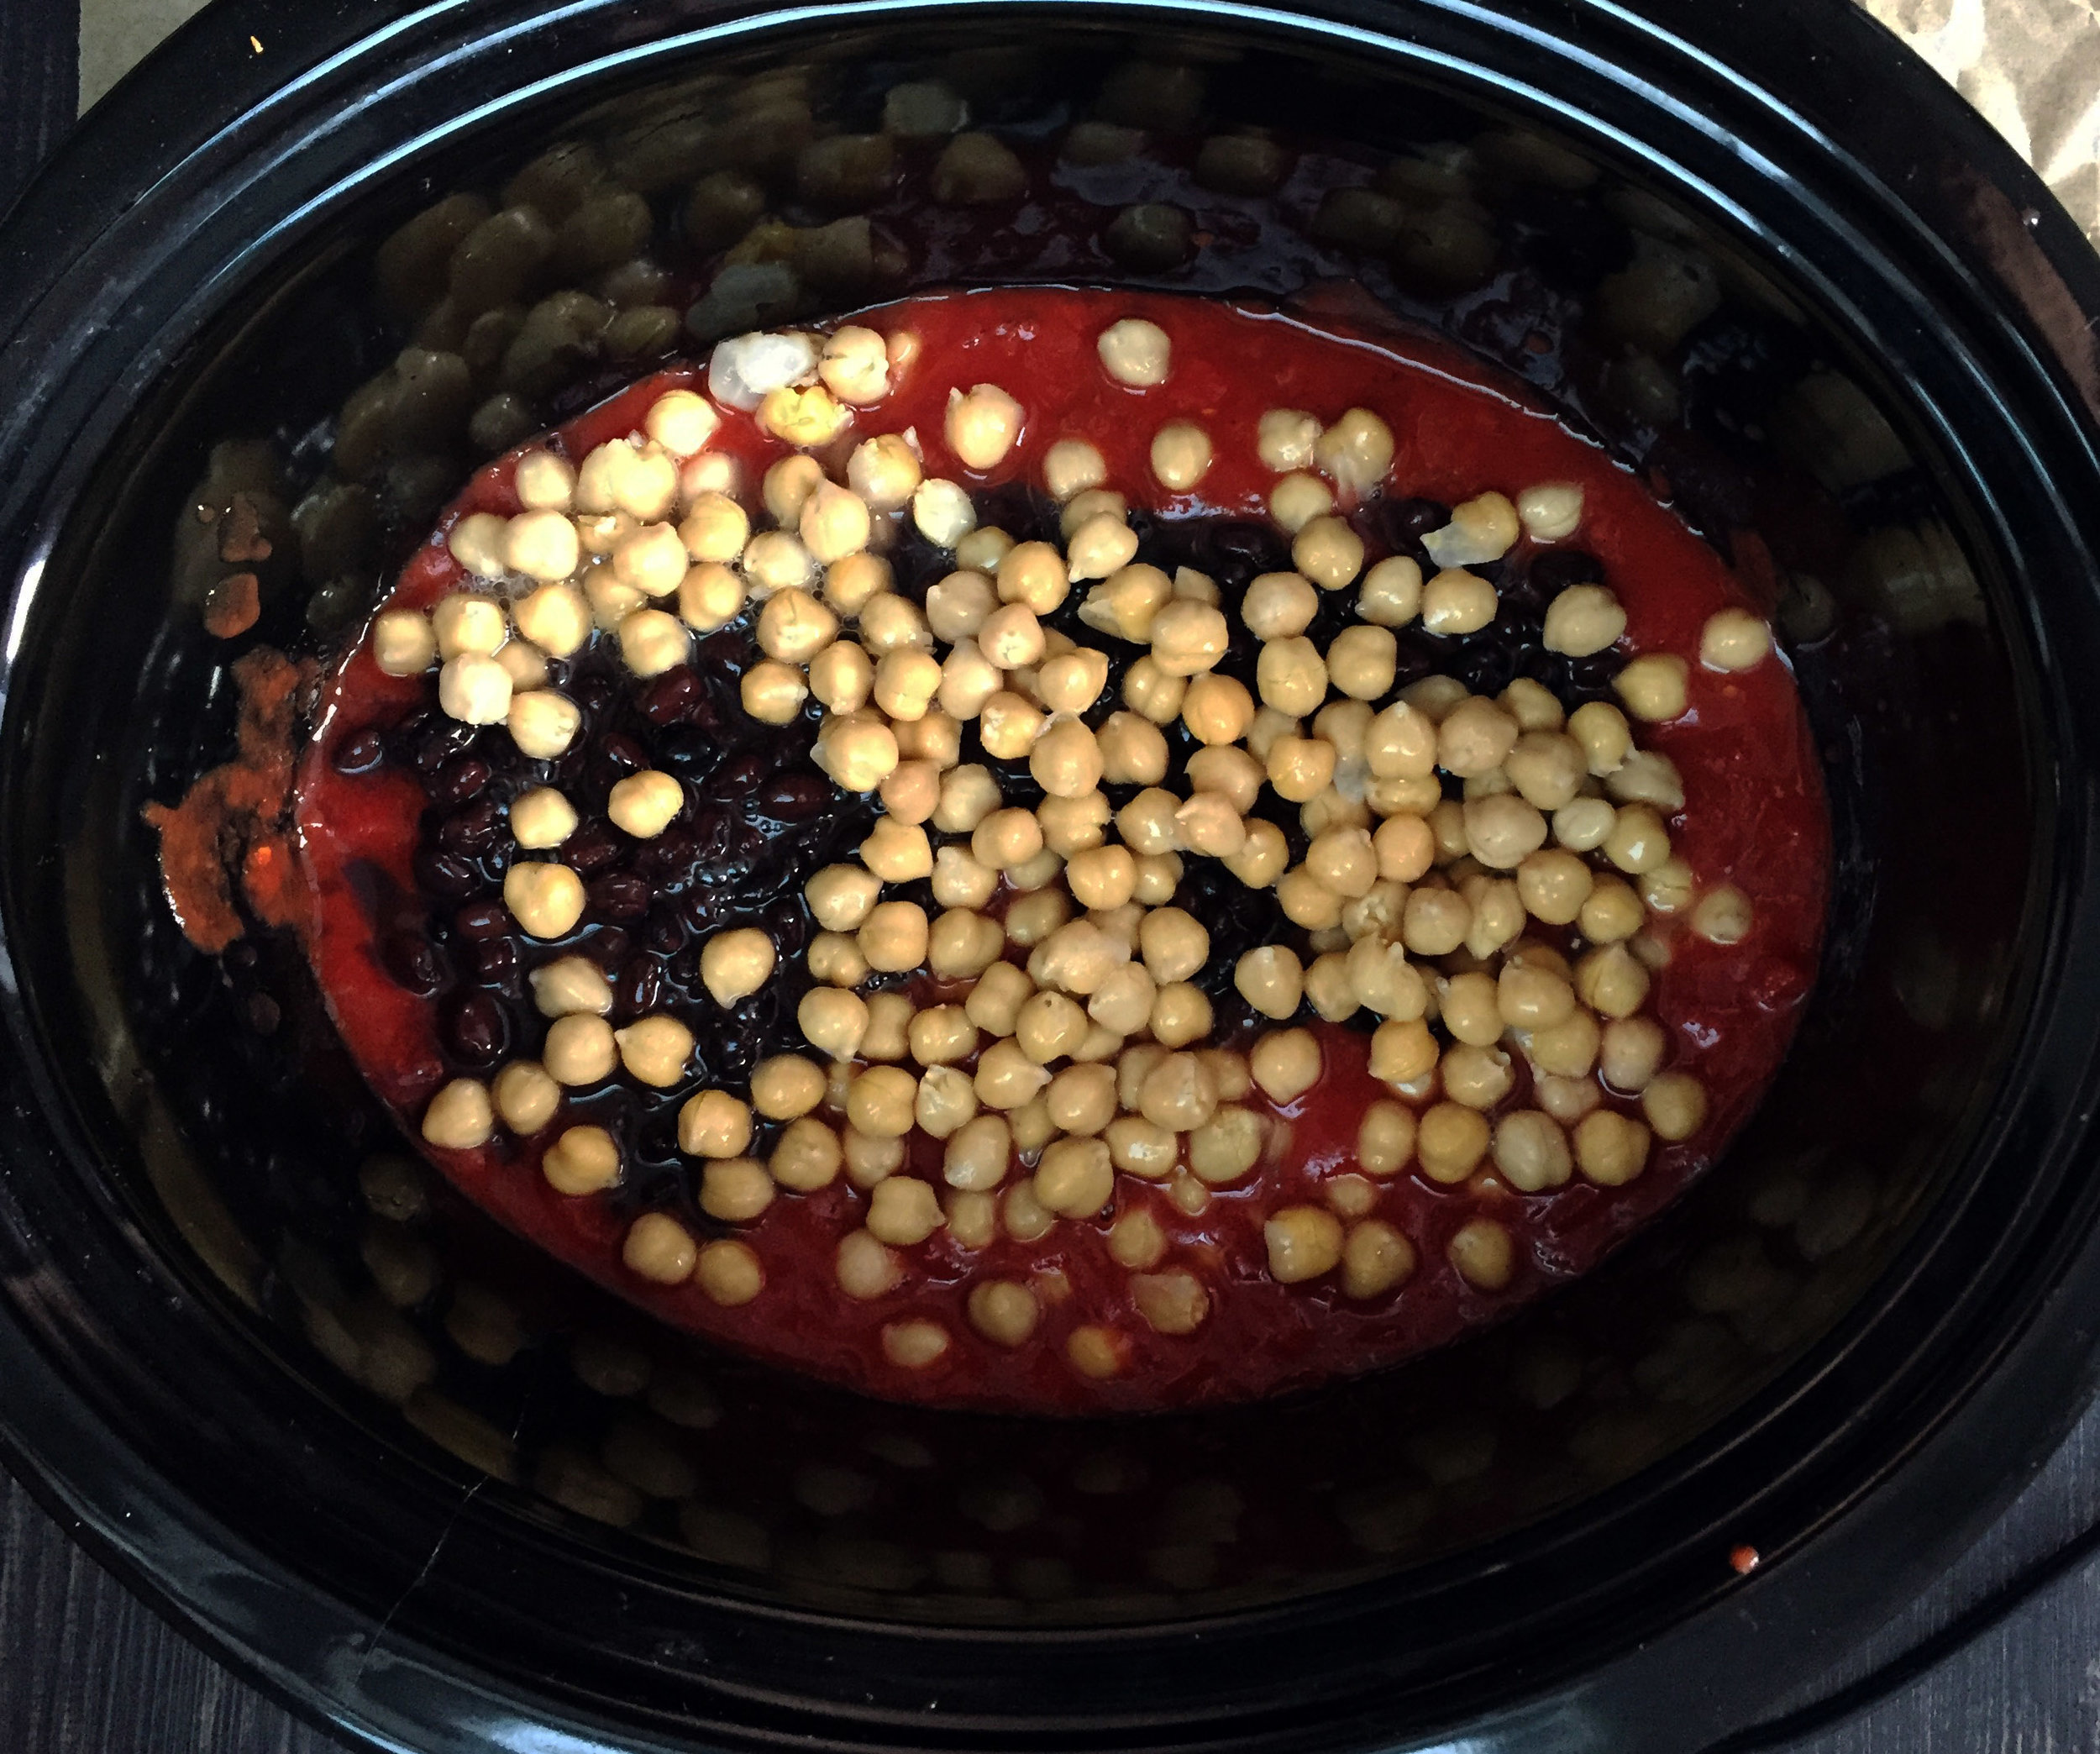 2. Add tomatoes and beans to the slow cooker.